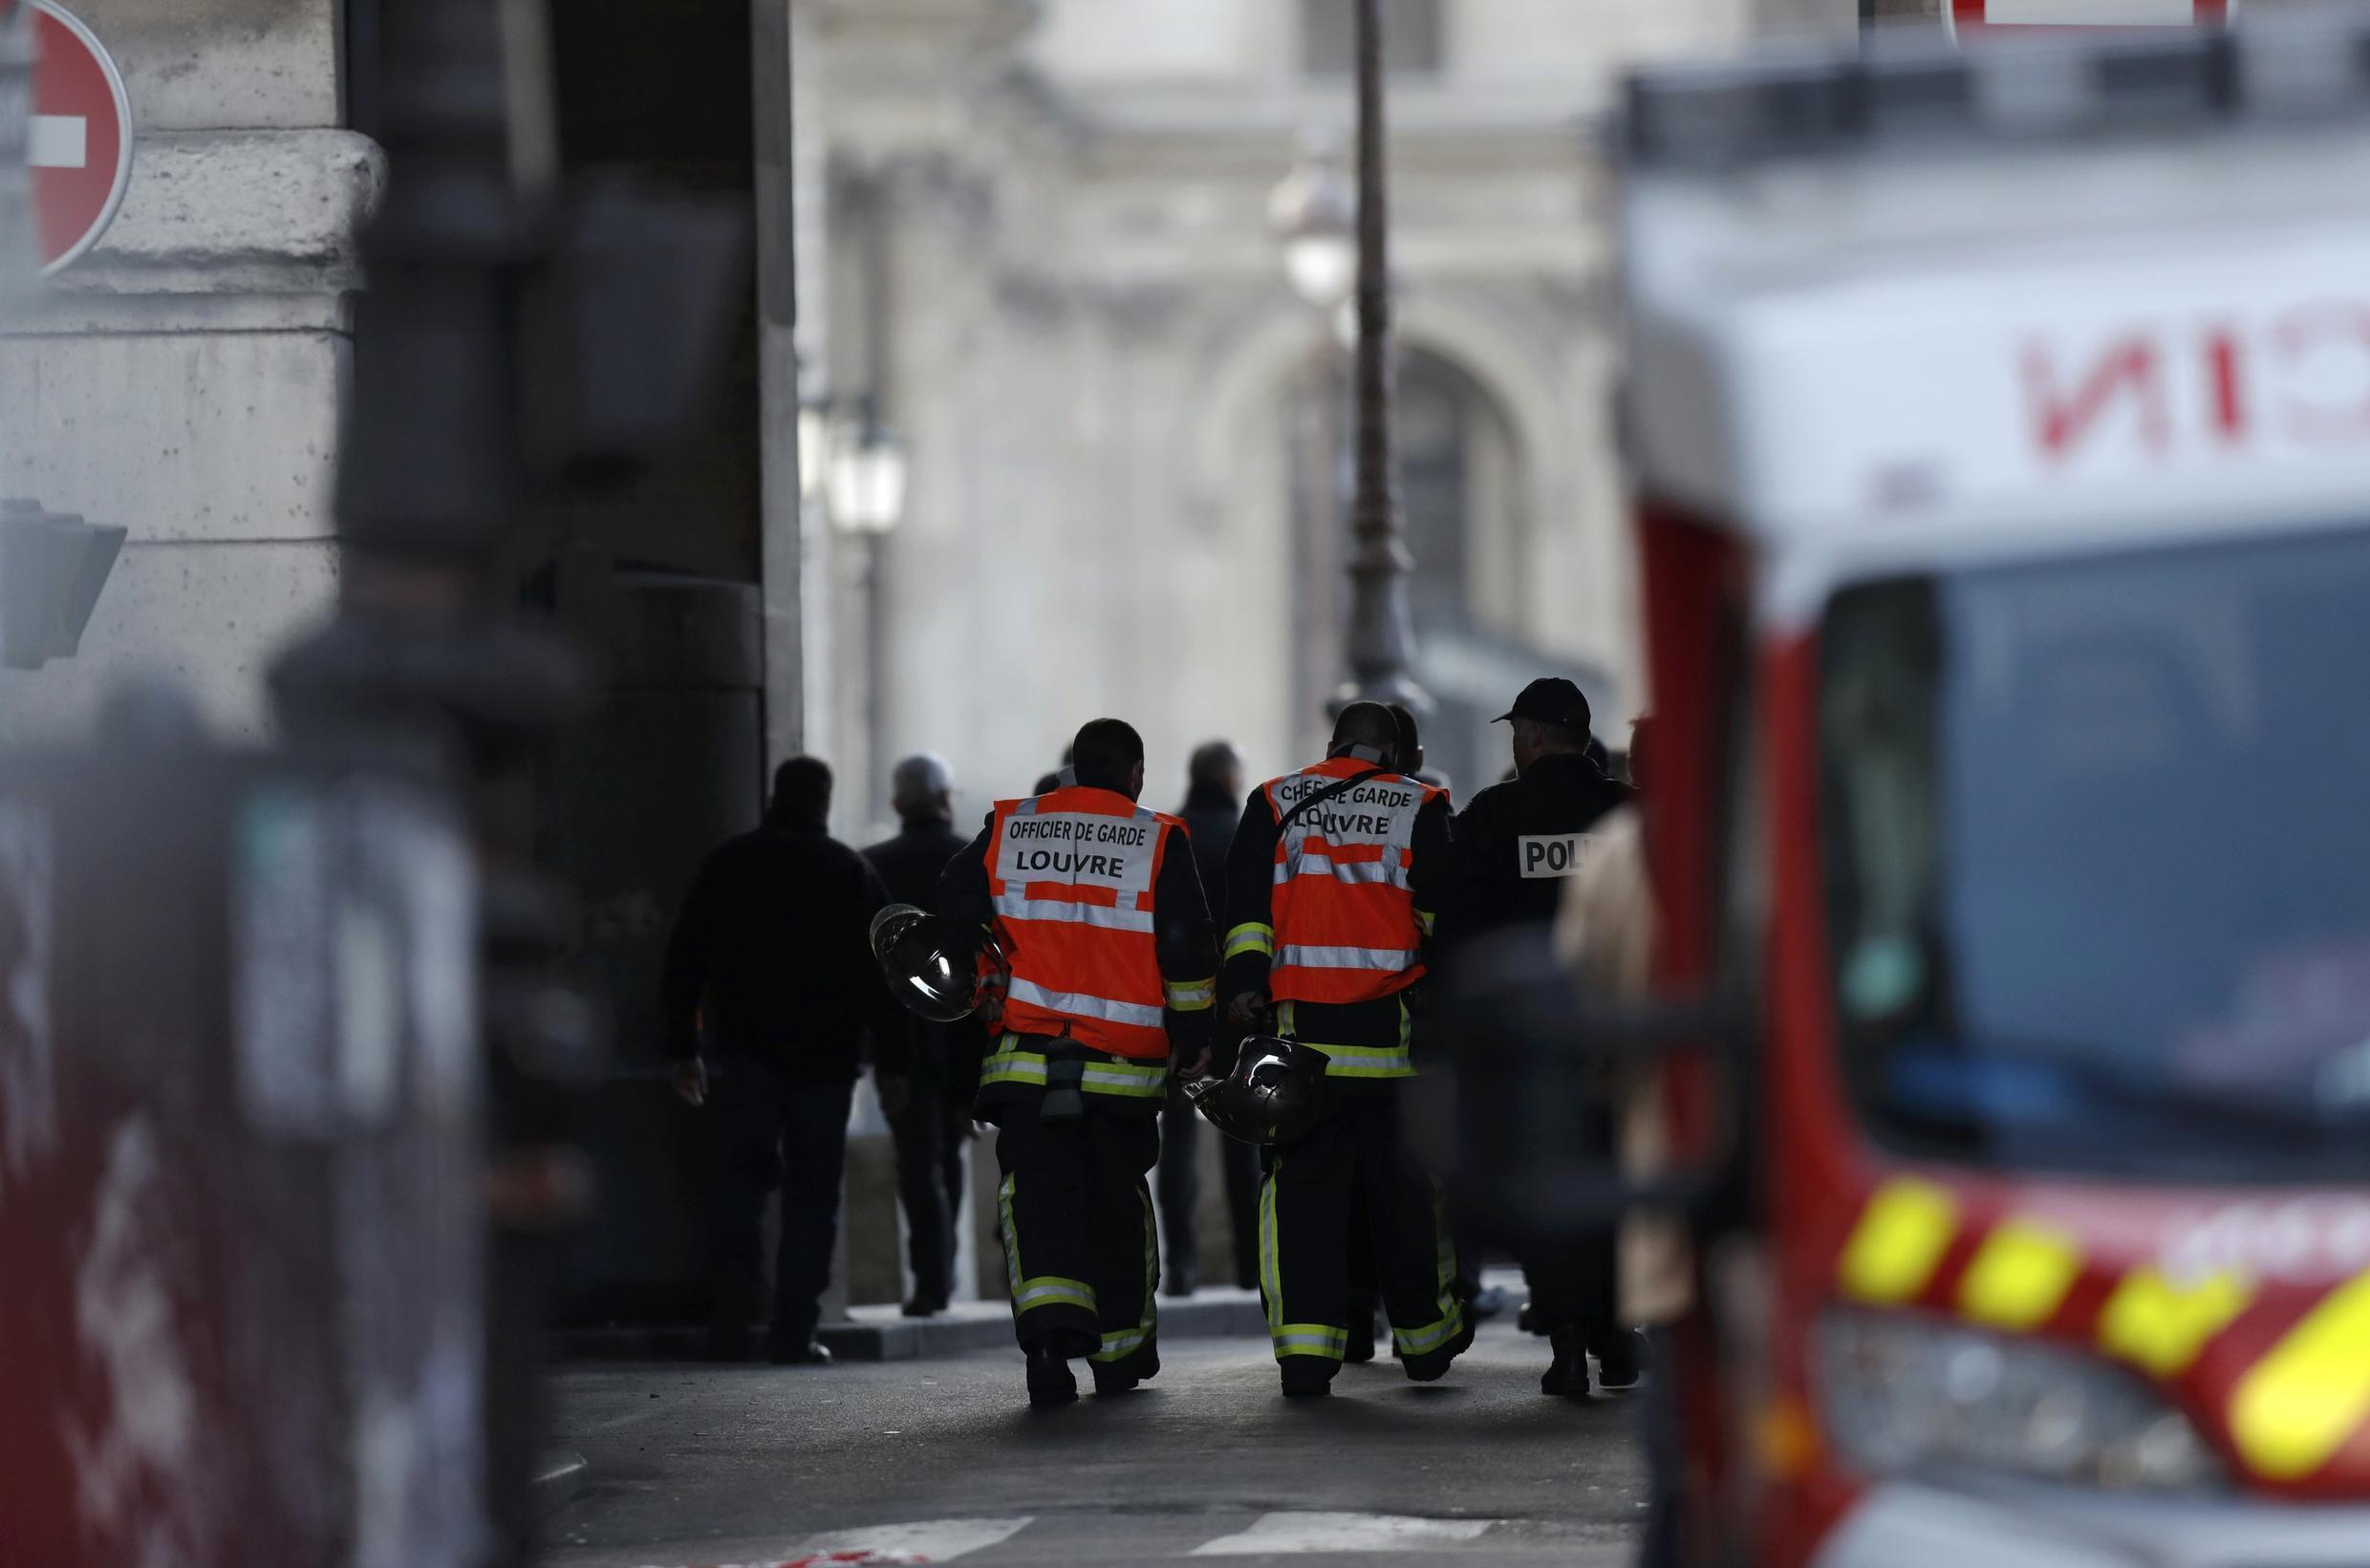 French firefighters and police are seen at the site near the Louvre Pyramid in Paris French firefighters and police are seen at the site near the Louvre Pyramid in Paris, France, February 3, 2017.